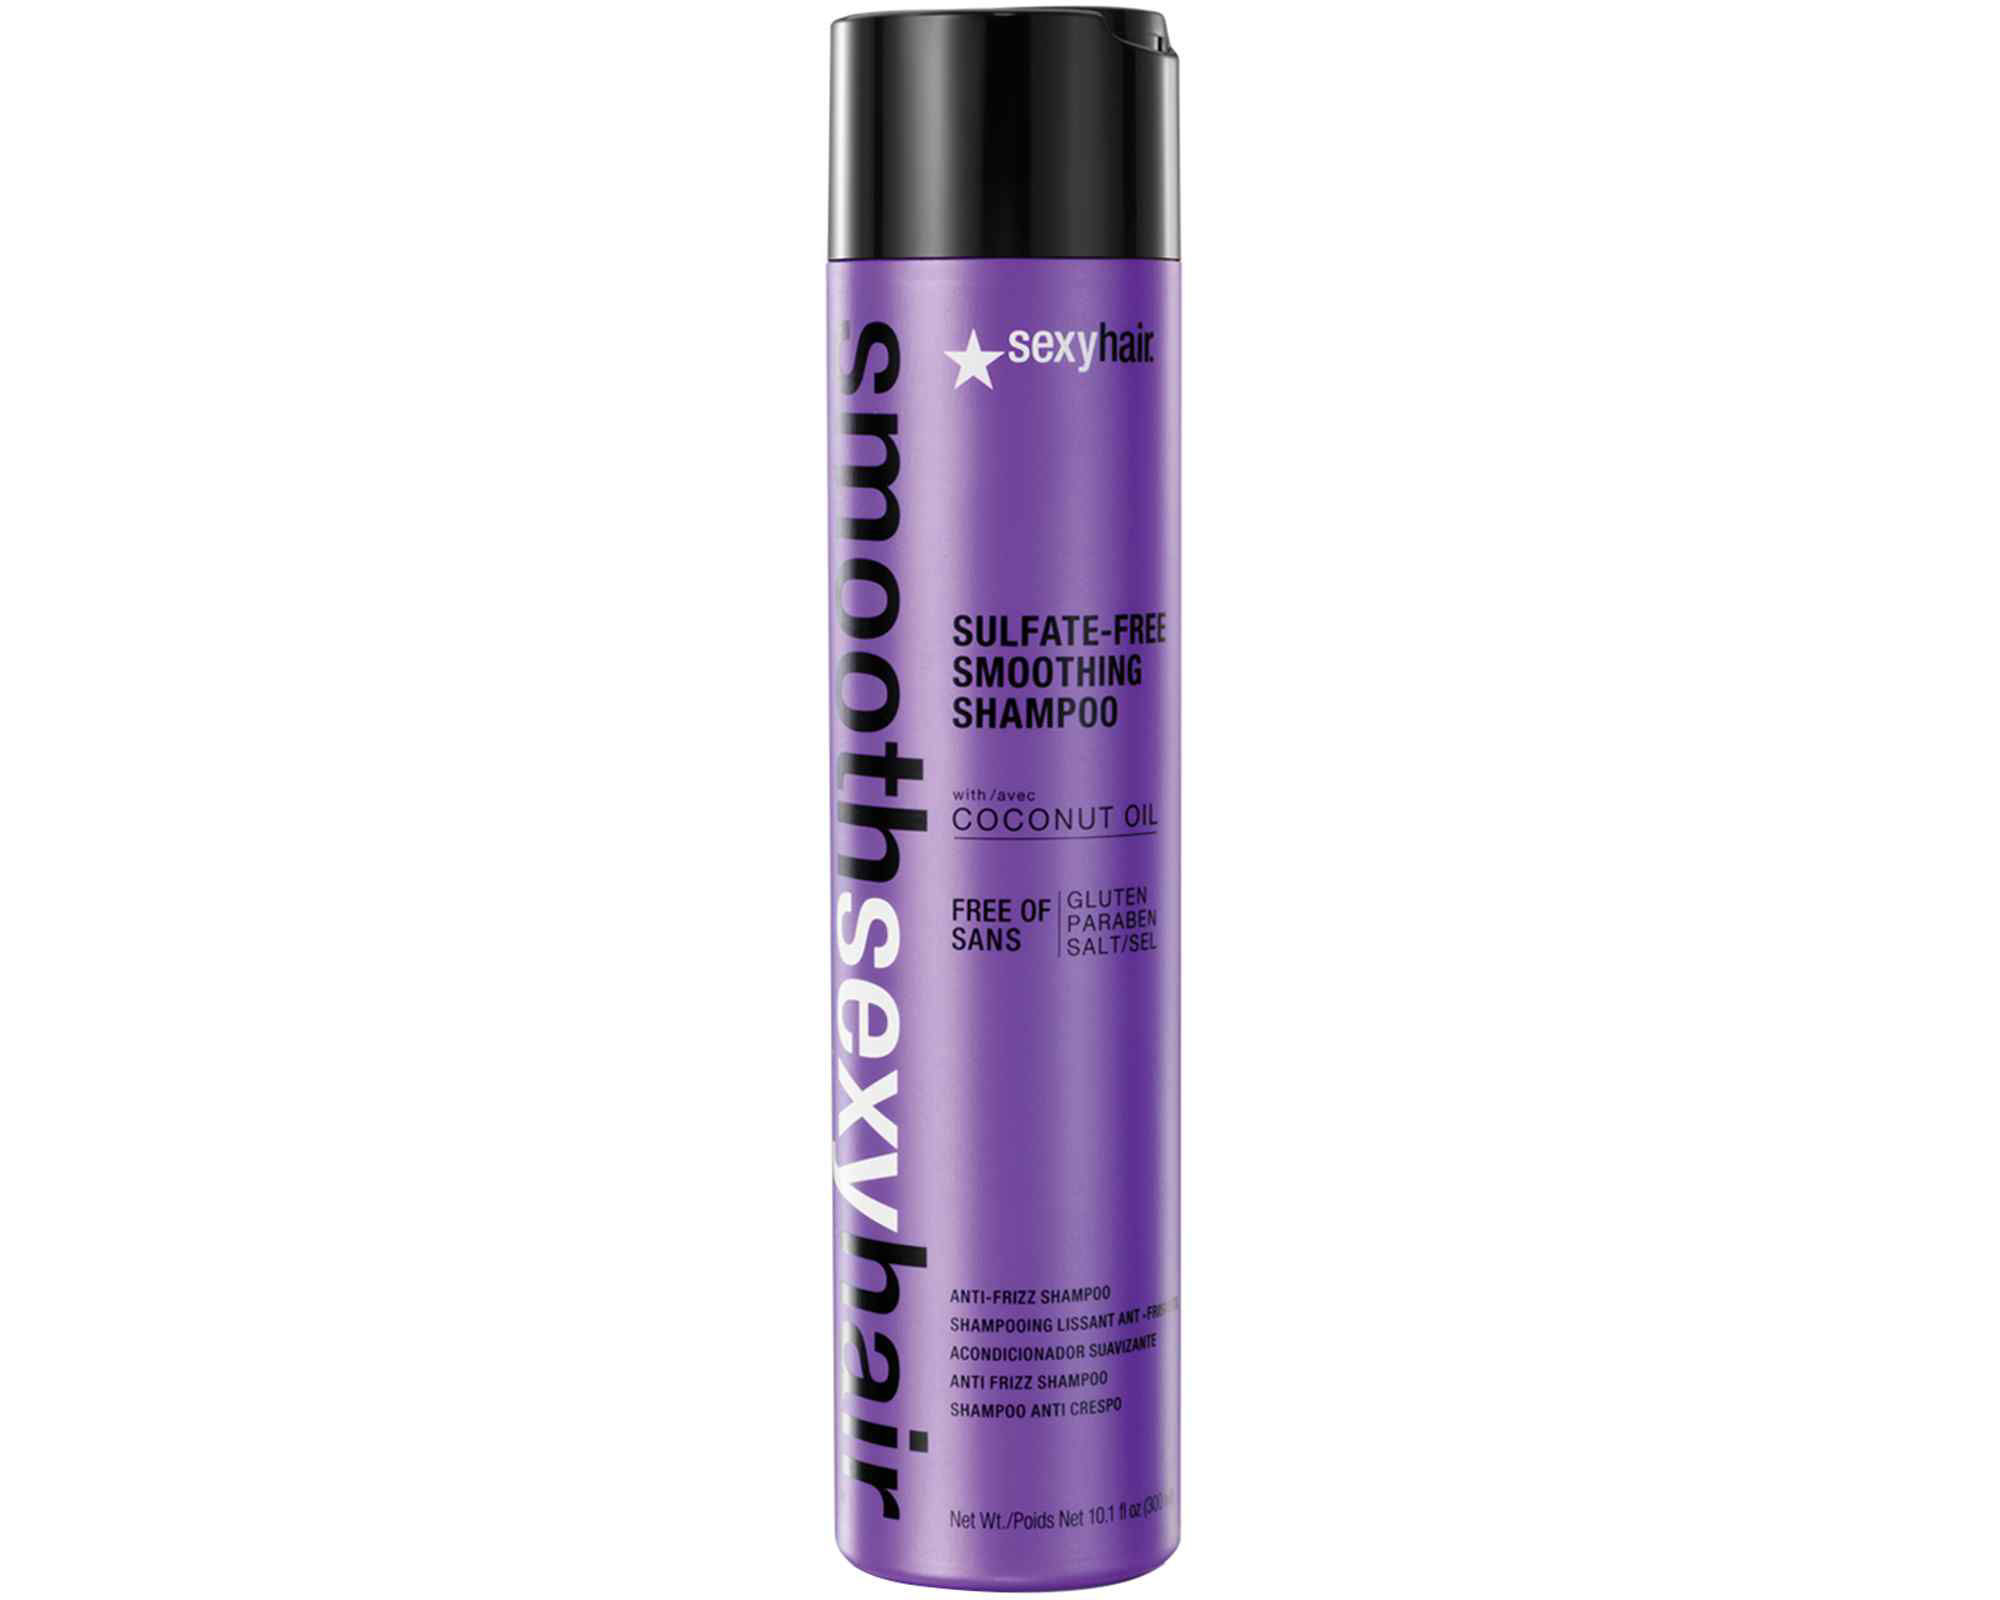 SEXY HAIR SMOOTH Sexy Hair Sulfate-Free Smoothing Shampoo 300ml